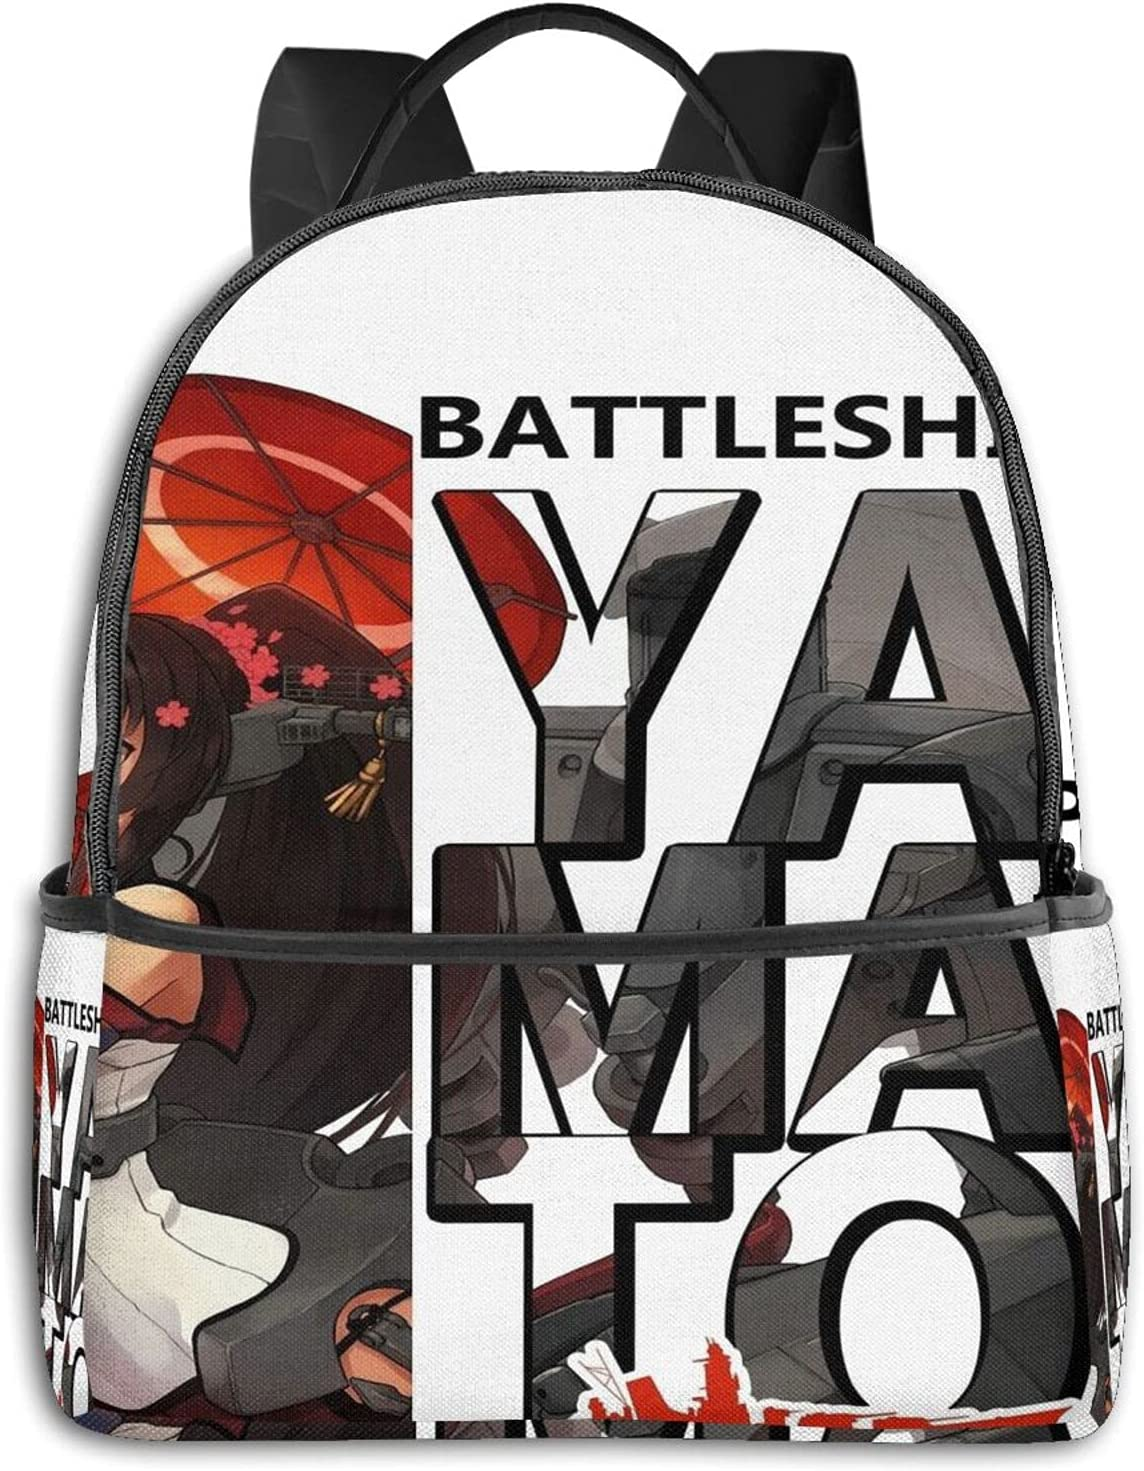 Yamato Kancolle Kantai Collection Battleship Graphic Student School Bag School Cycling Leisure Travel Camping Outdoor Backpack